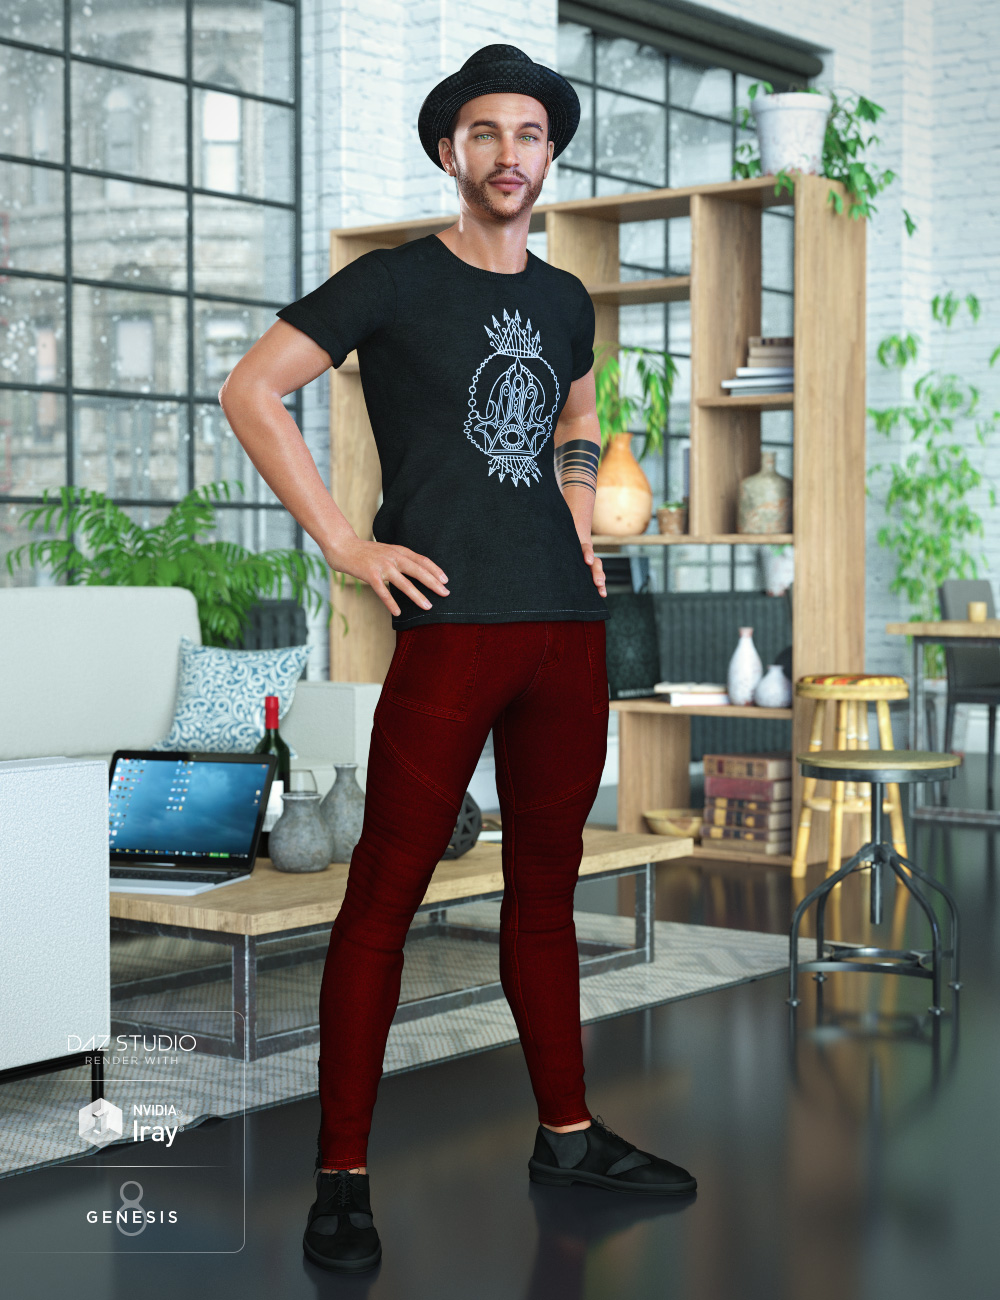 Hipster Outfit for Genesis 8 Male(s) by: DirtyFairyNikisatez, 3D Models by Daz 3D